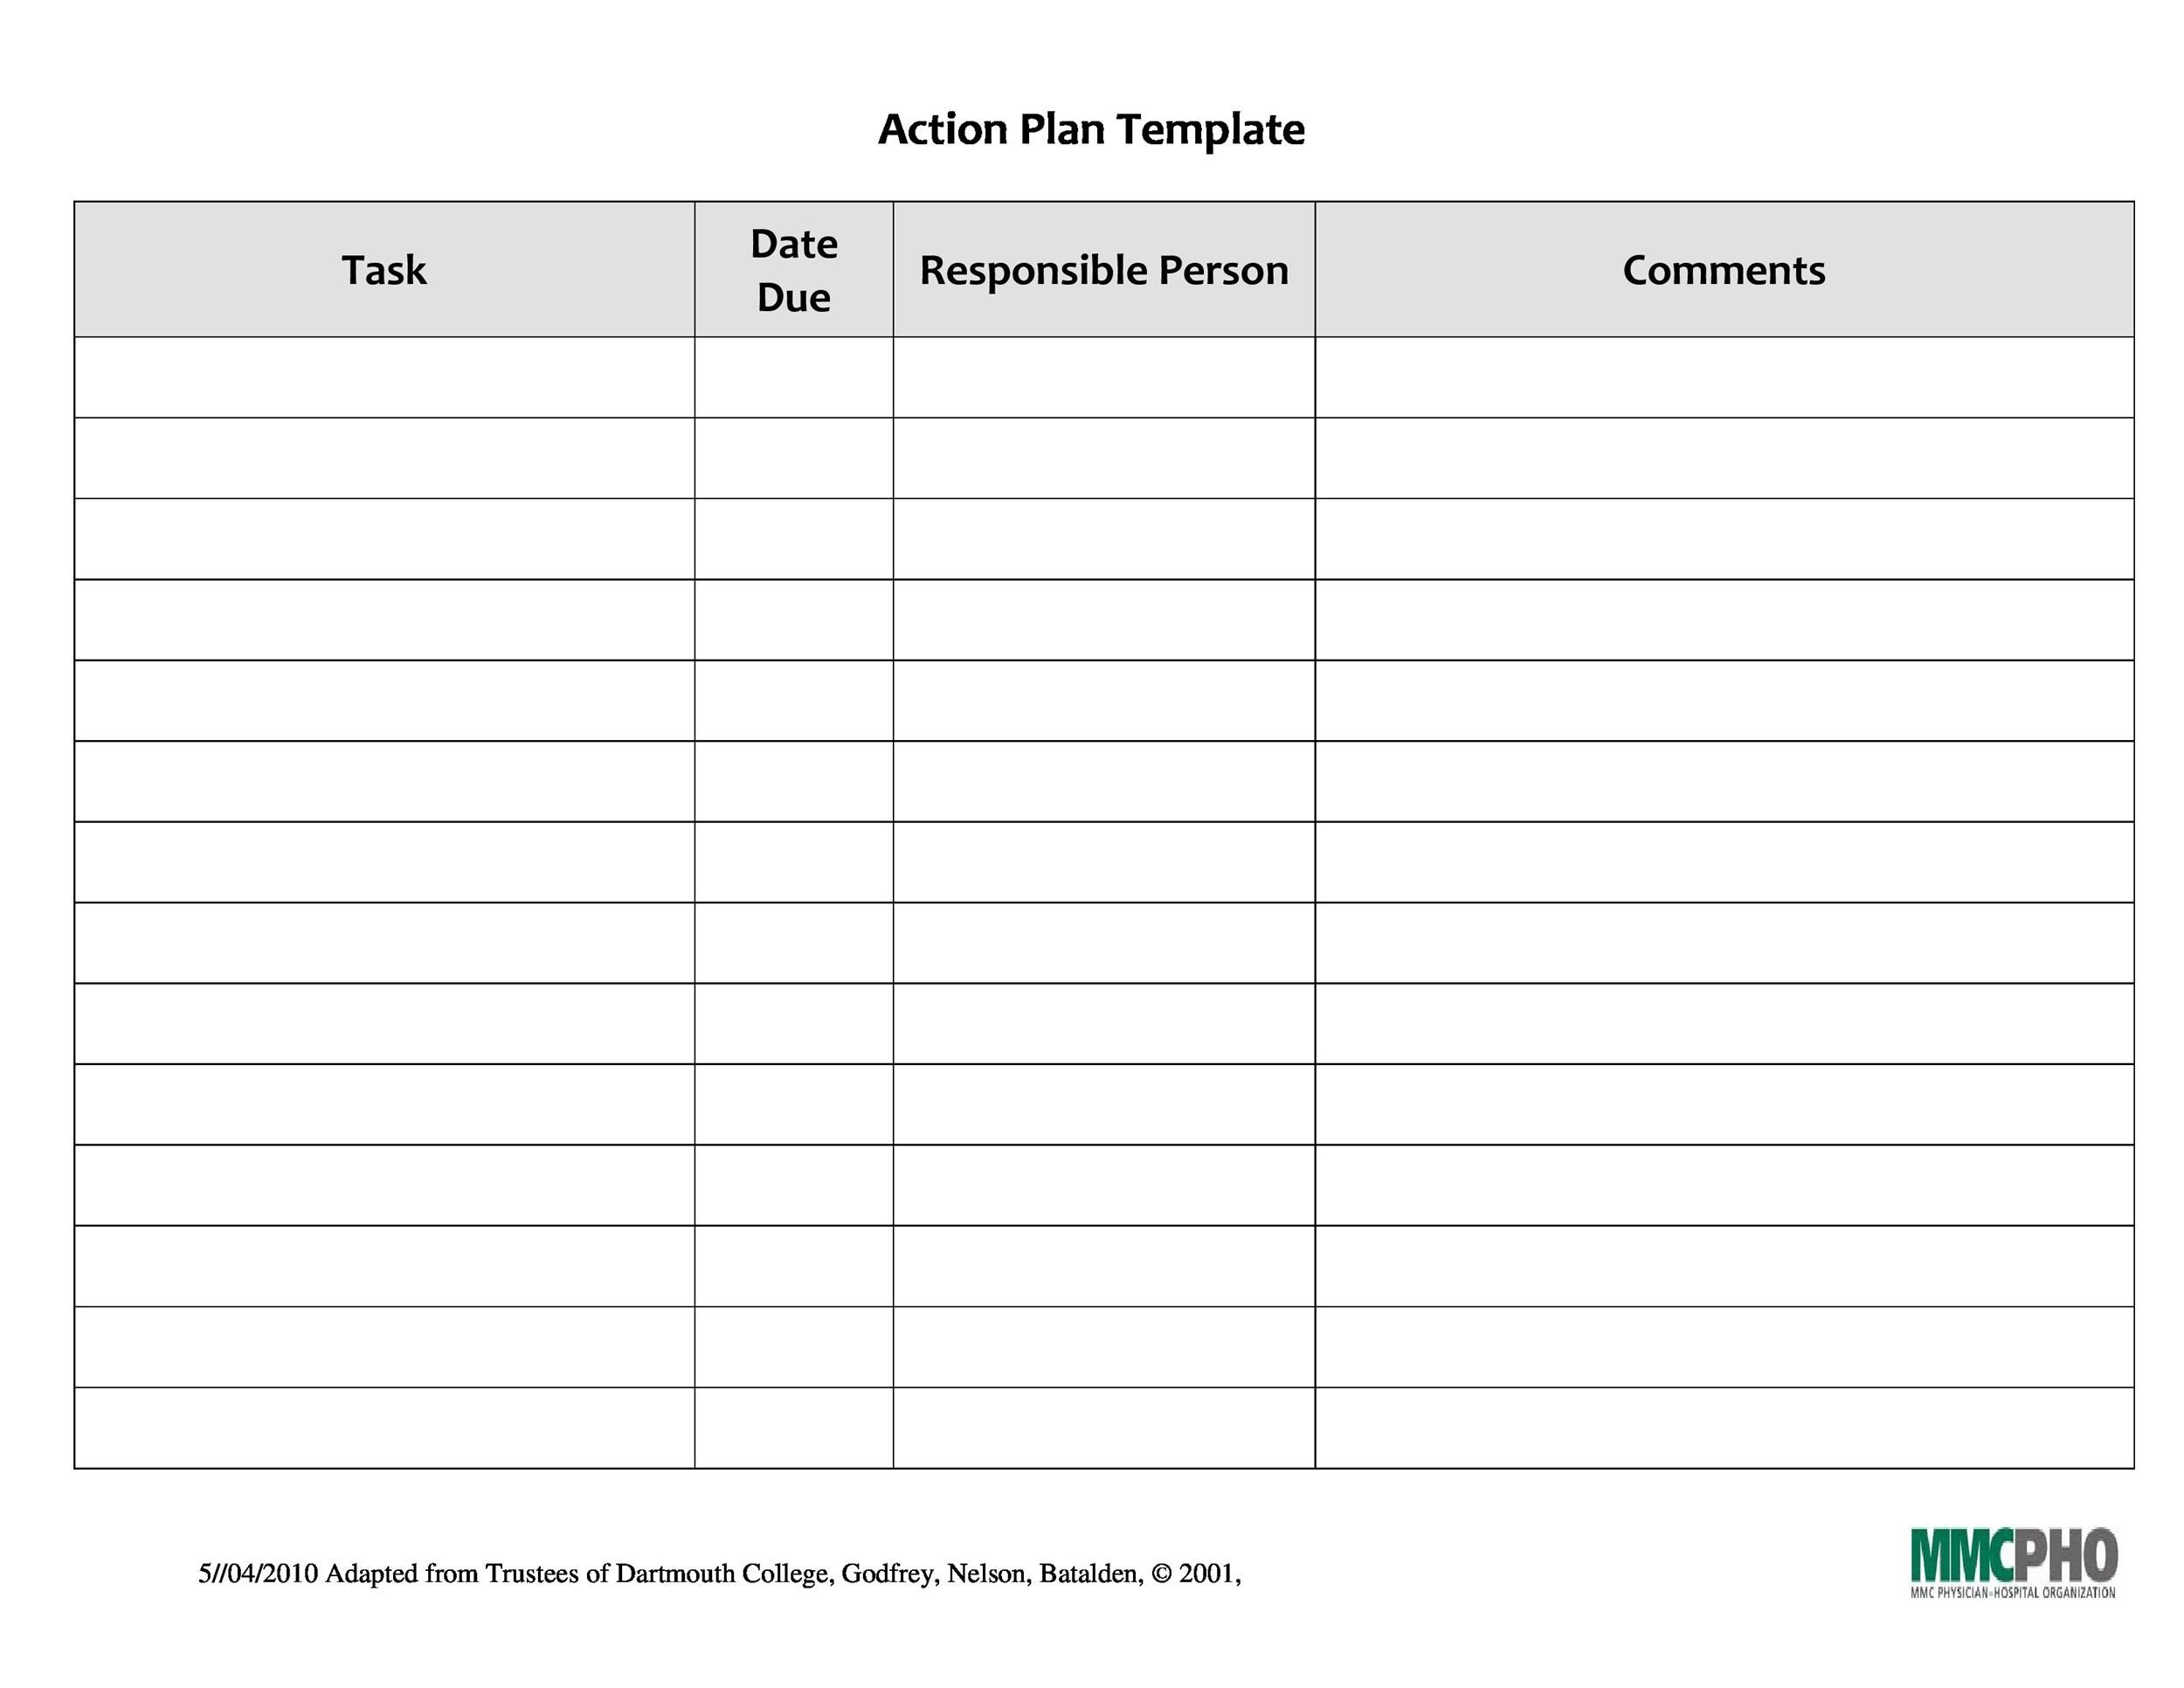 Quality Action Plan Template Excel Download 45 Free Action Plan Templates Corrective Emergency